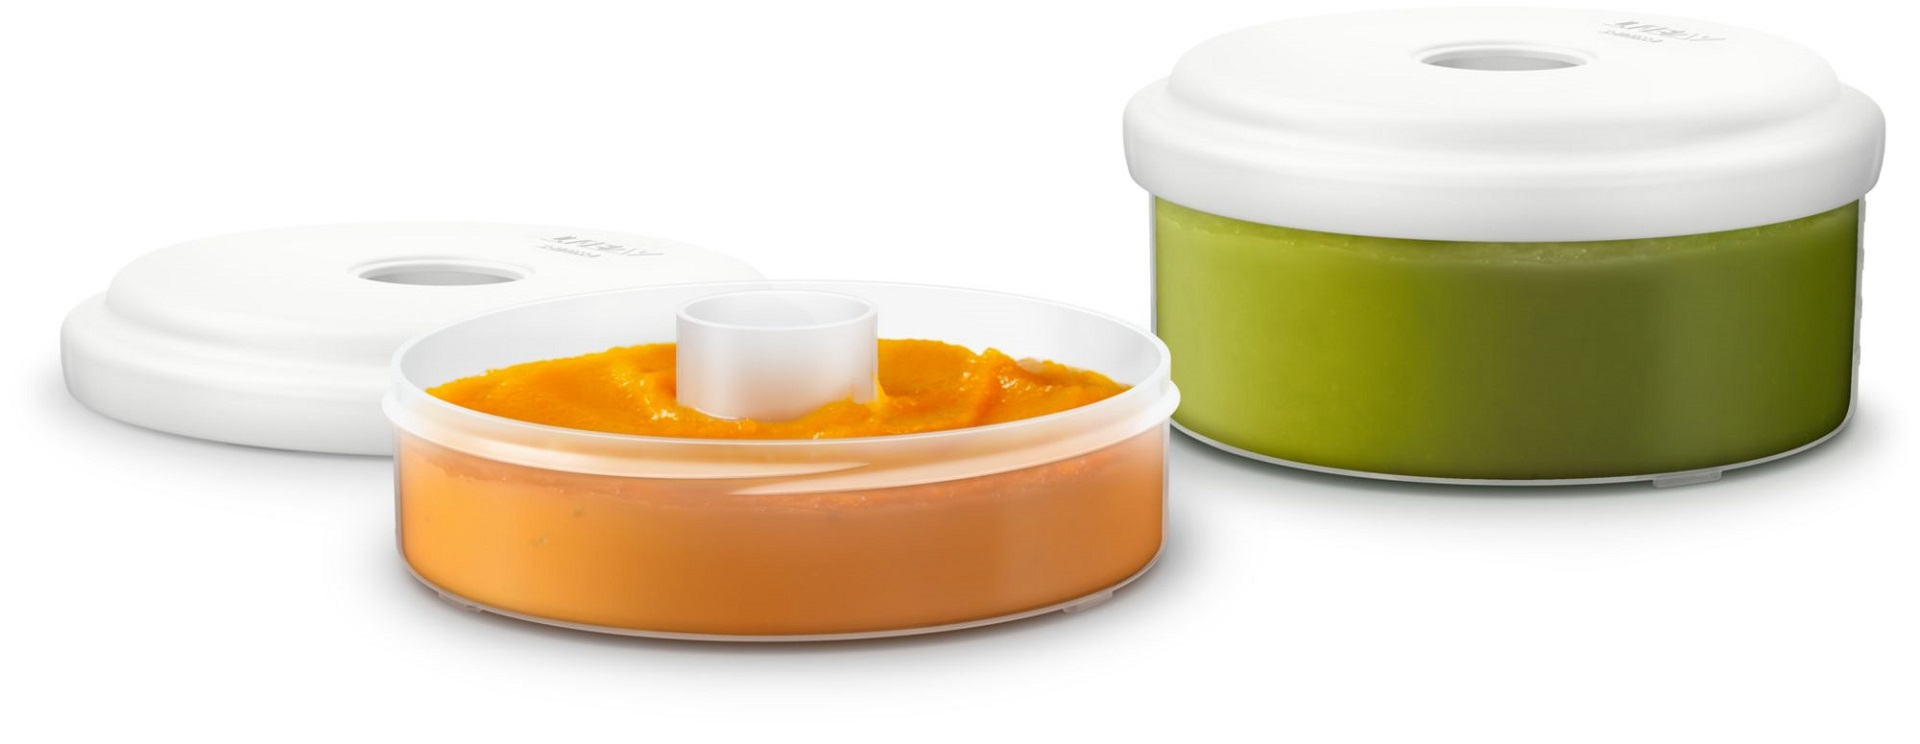 Store Bought Baby Food Storage